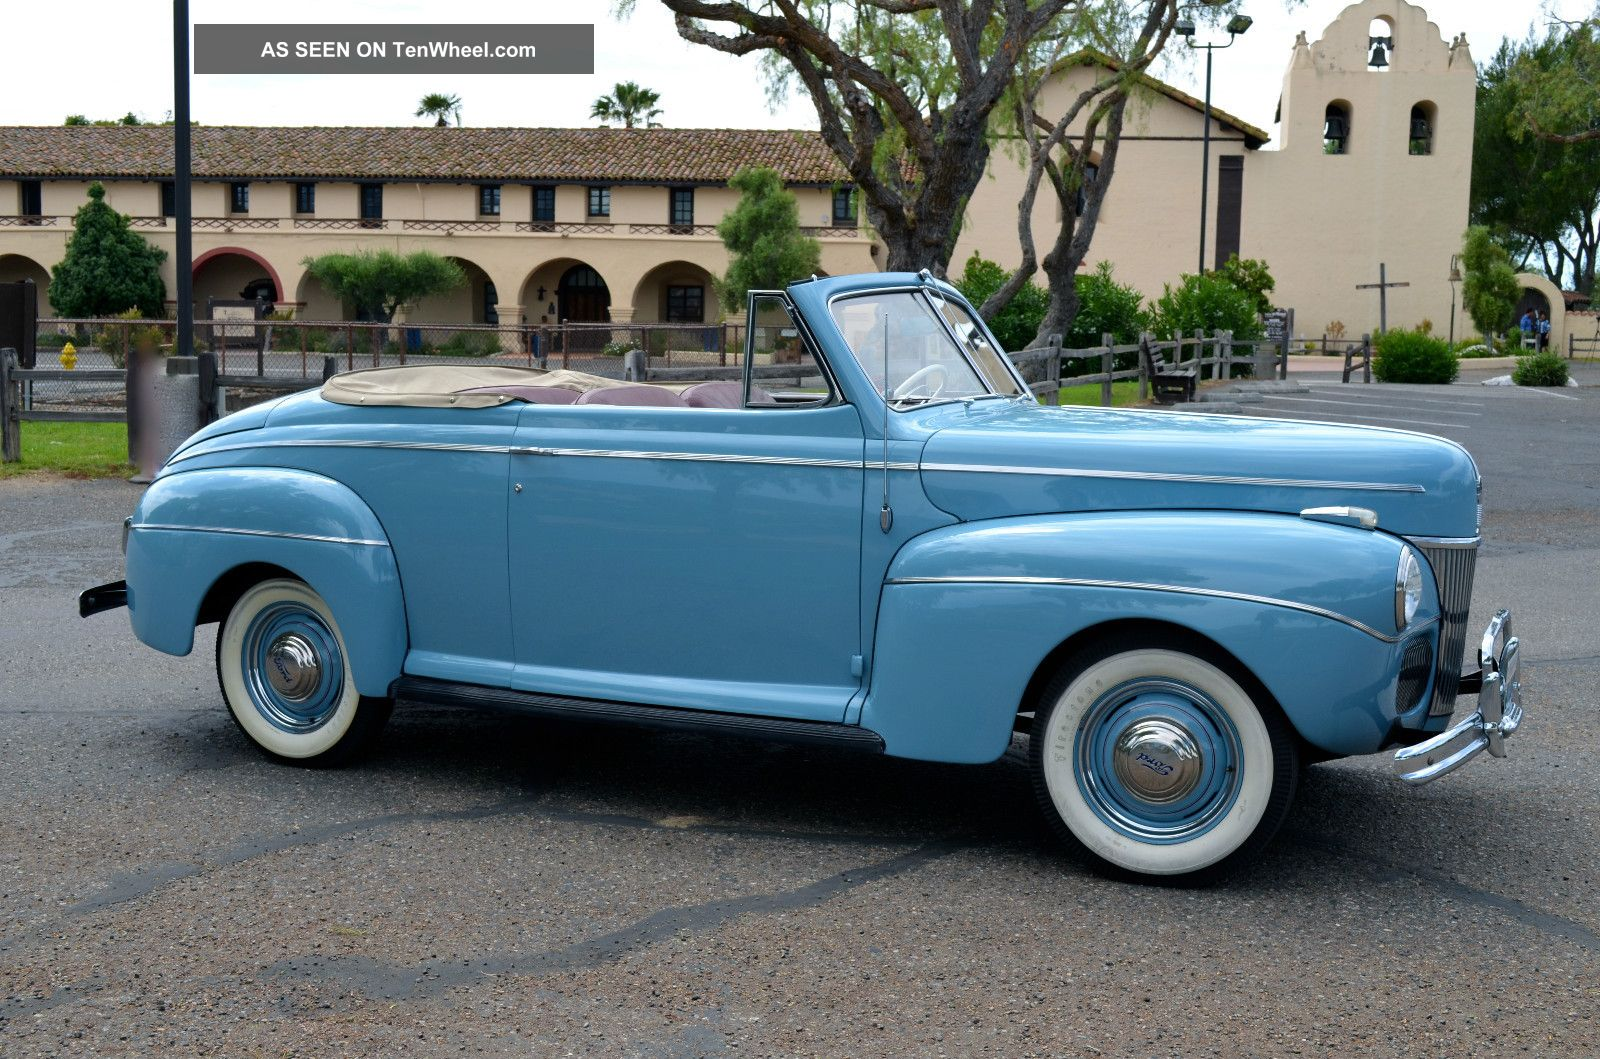 1941 ford deluxe convertible stock by bill harrah   s ca Ford Truck Owners Manual ford model t owners manual pdf